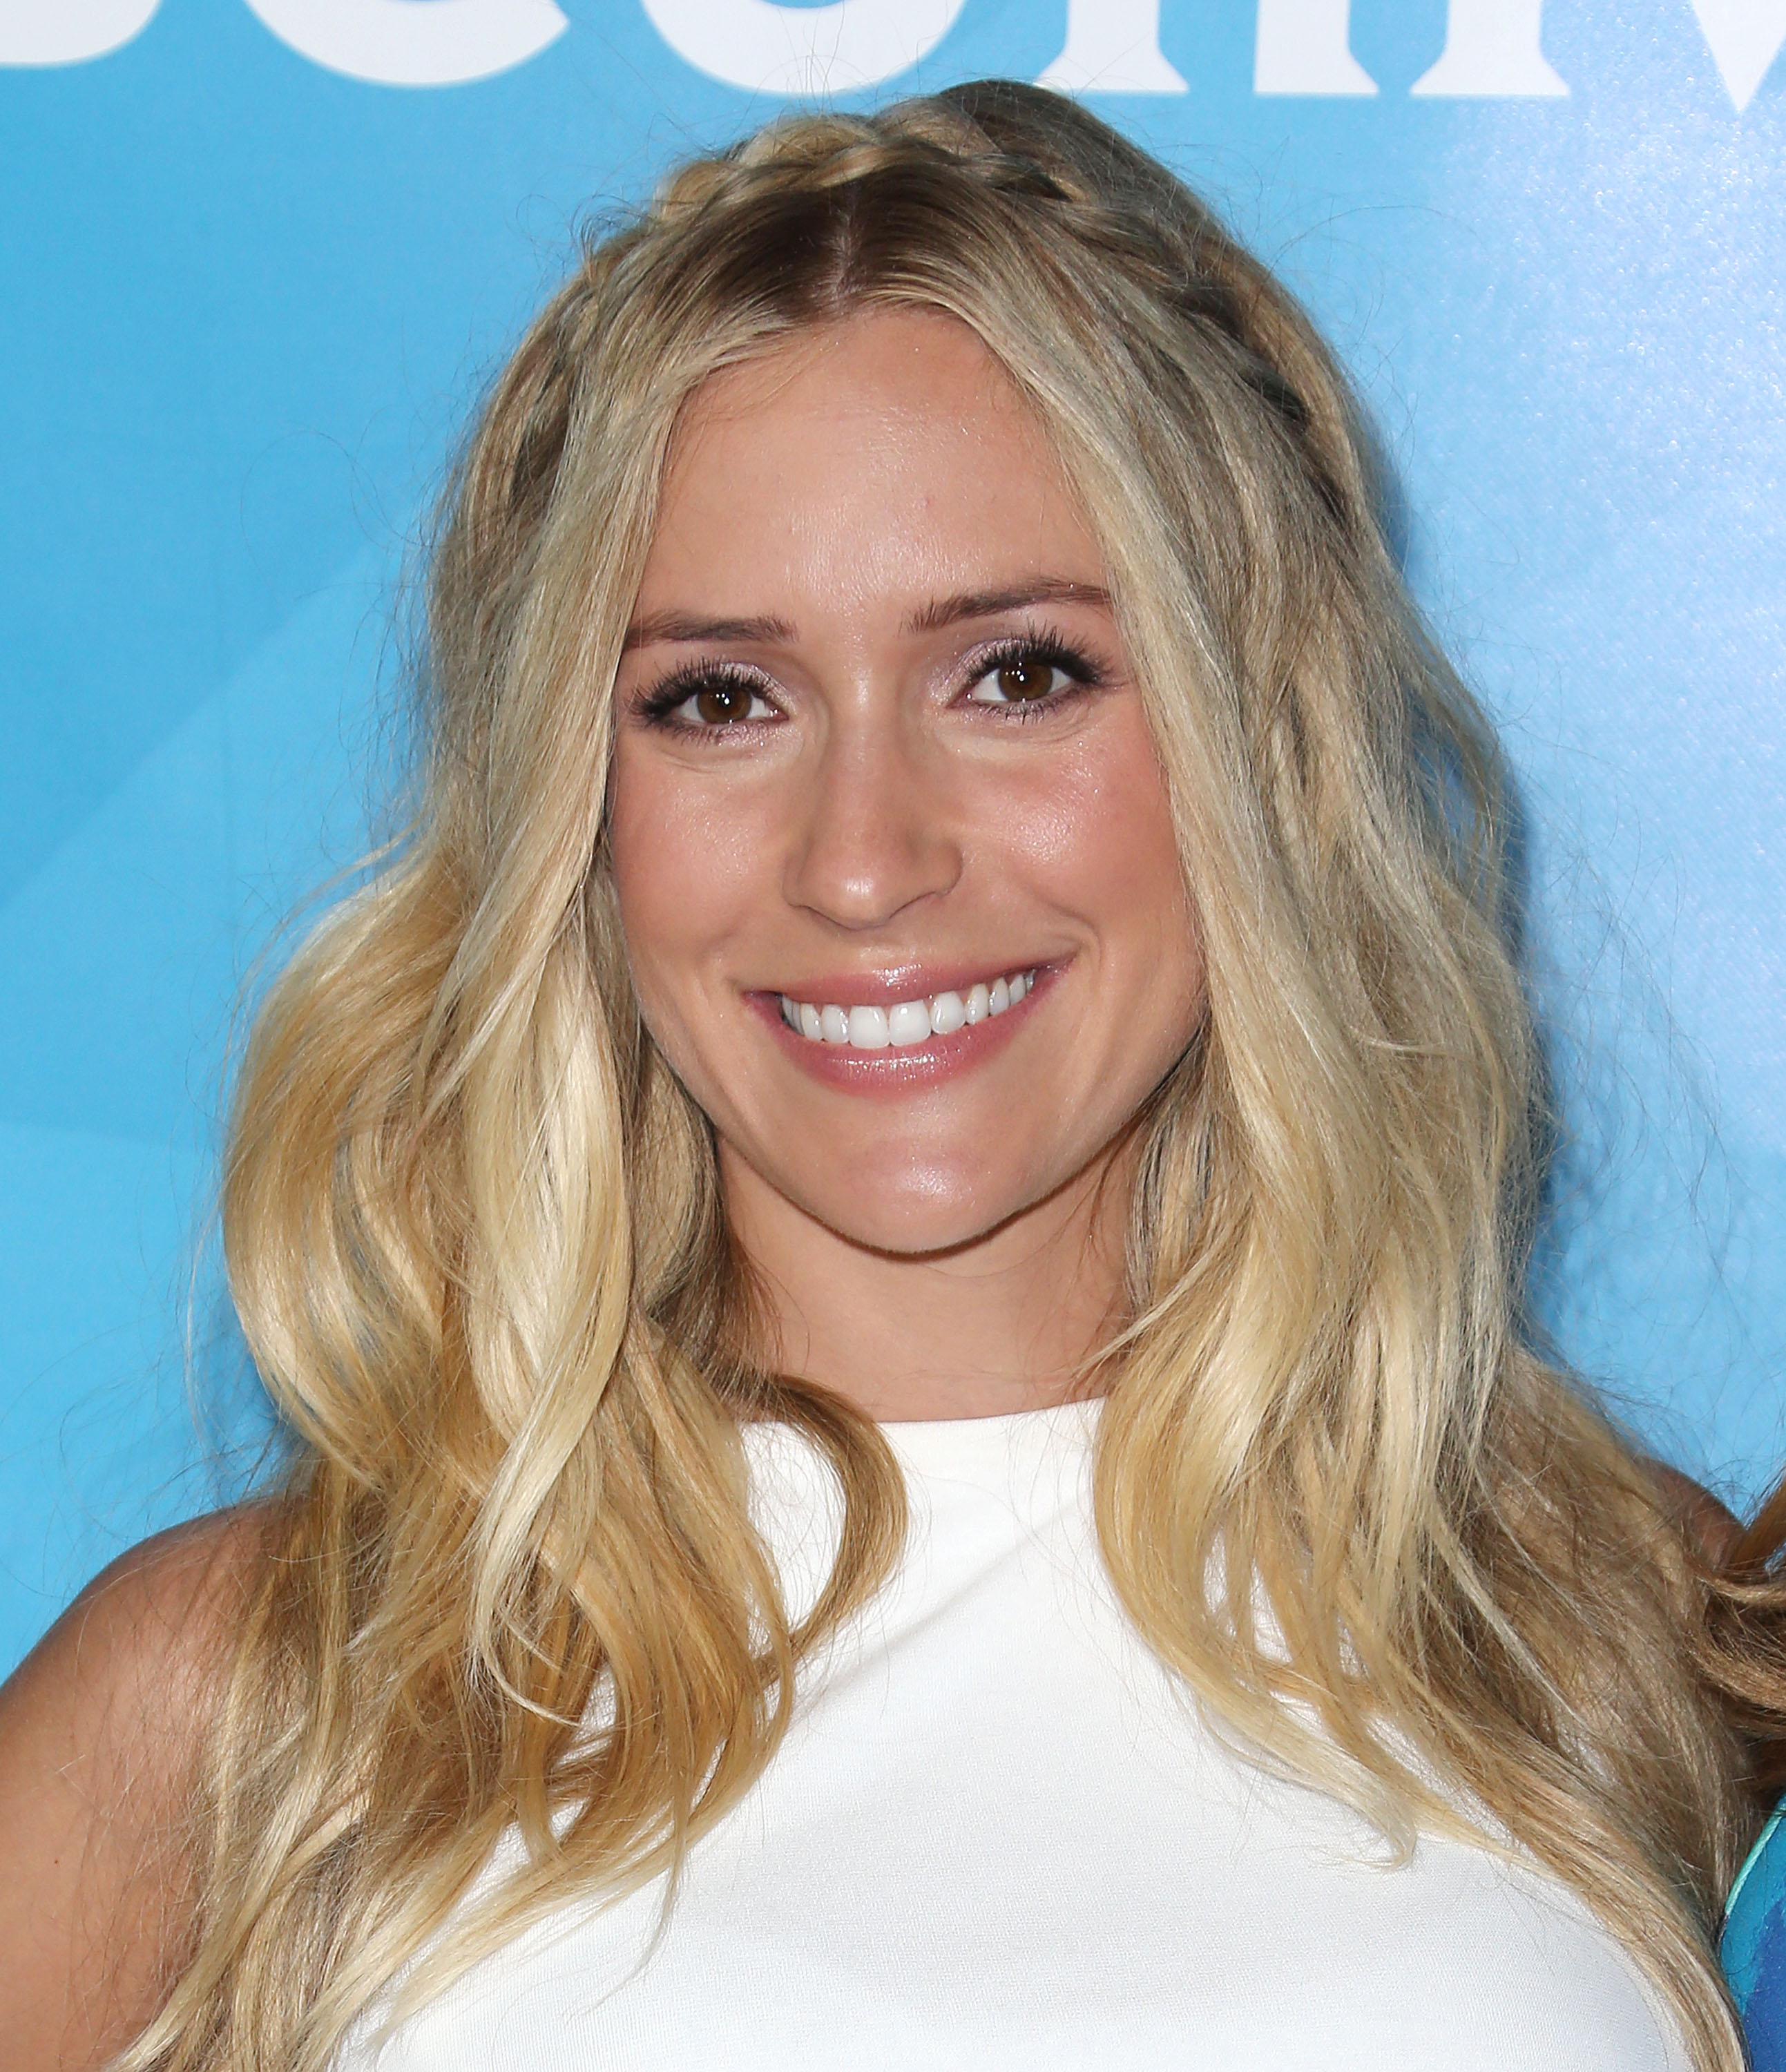 Kristin Cavallari loses brother